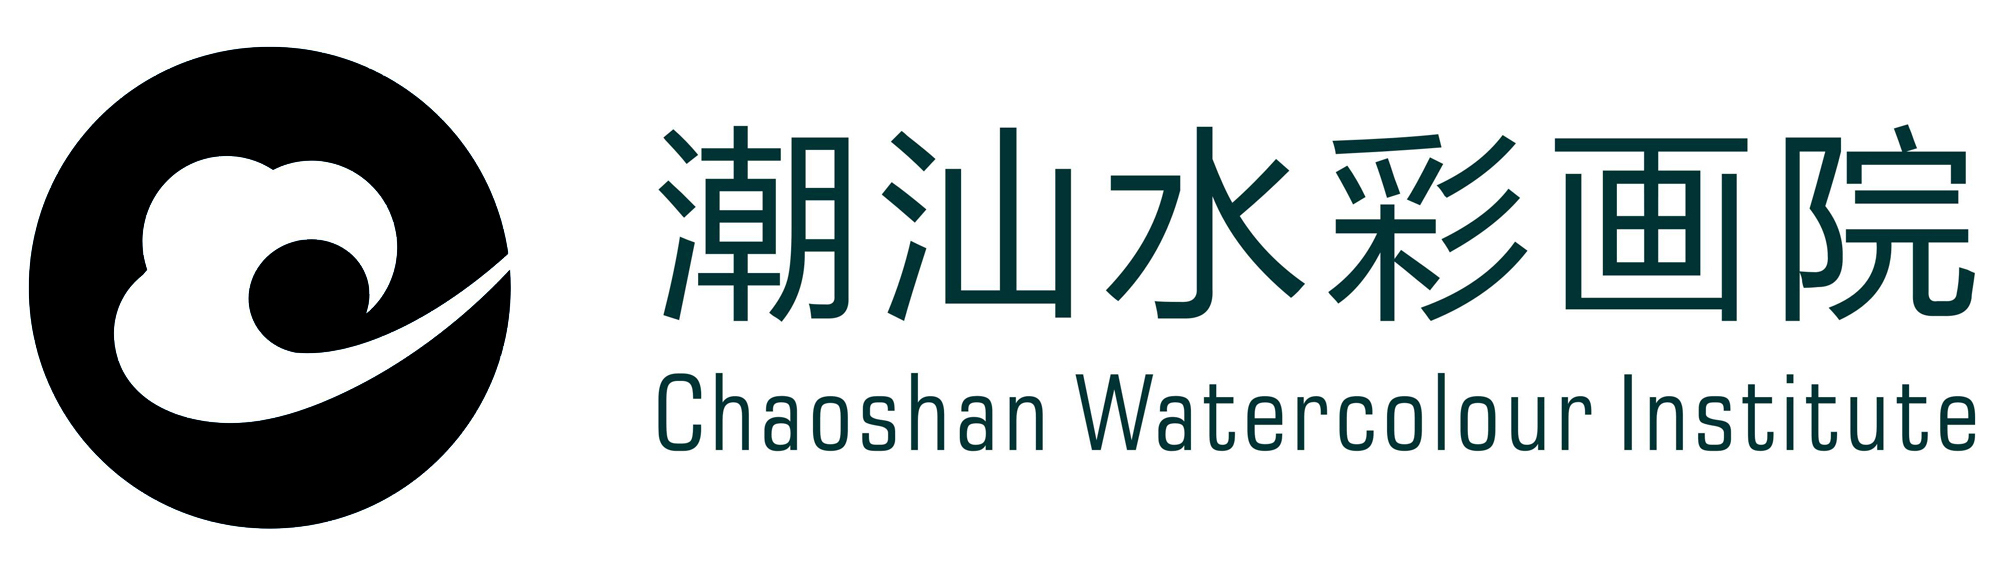 The Chaoshan Watercolour Award